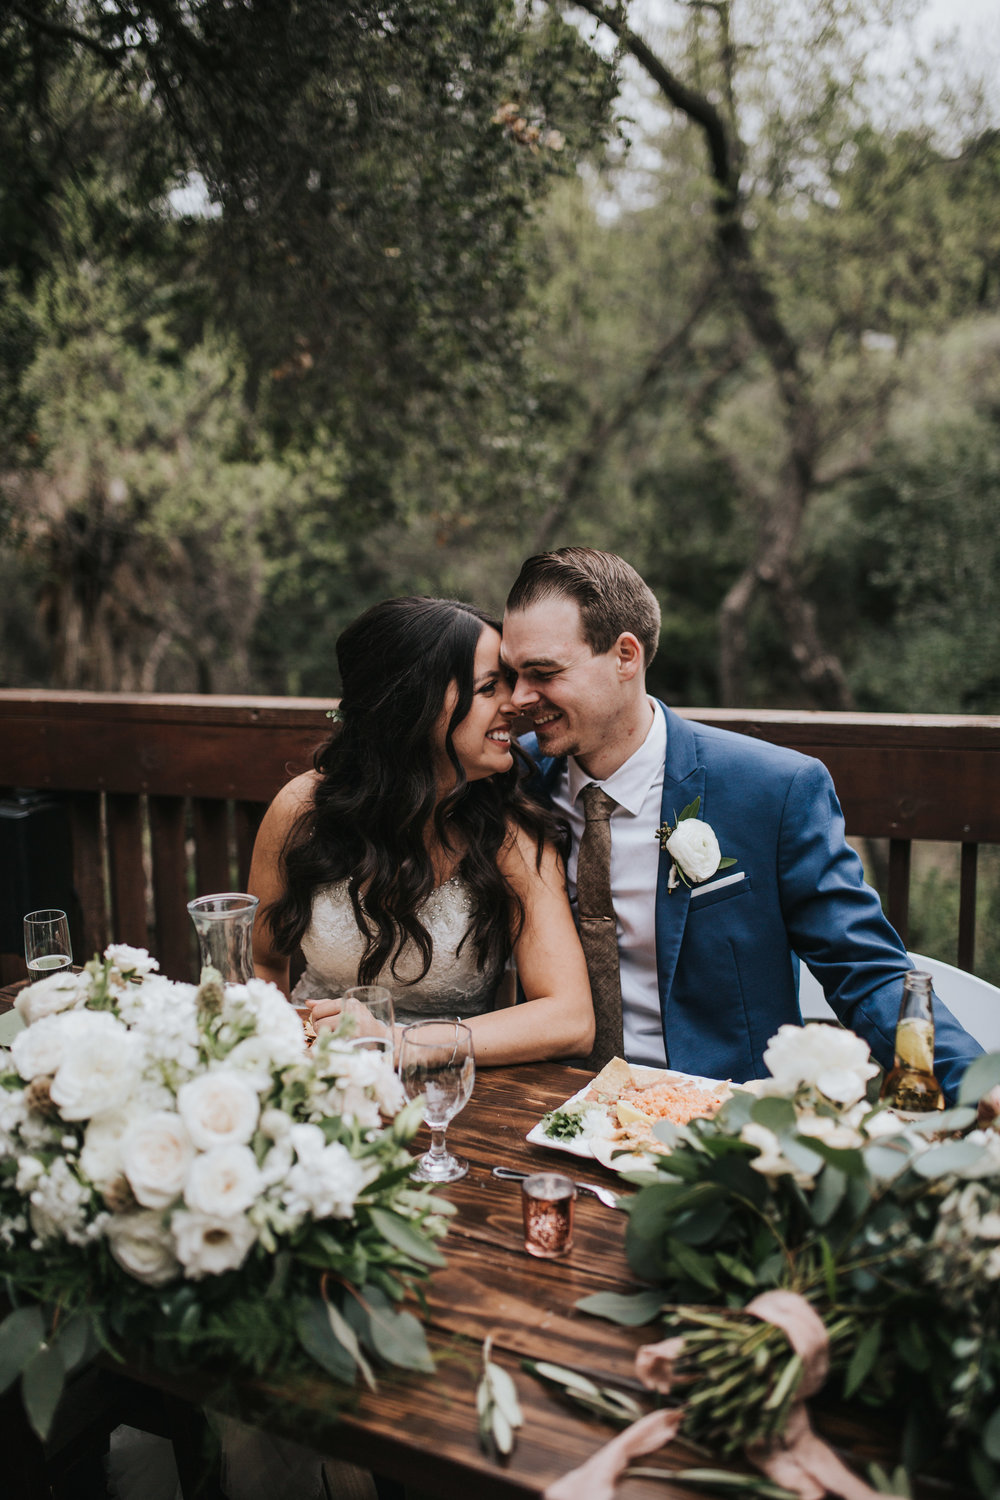 The 1909, The 1909 Wedding, Topanga Canyon Wedding, sweetheart table ideas, sweetheart table arrangement, candid wedding photos